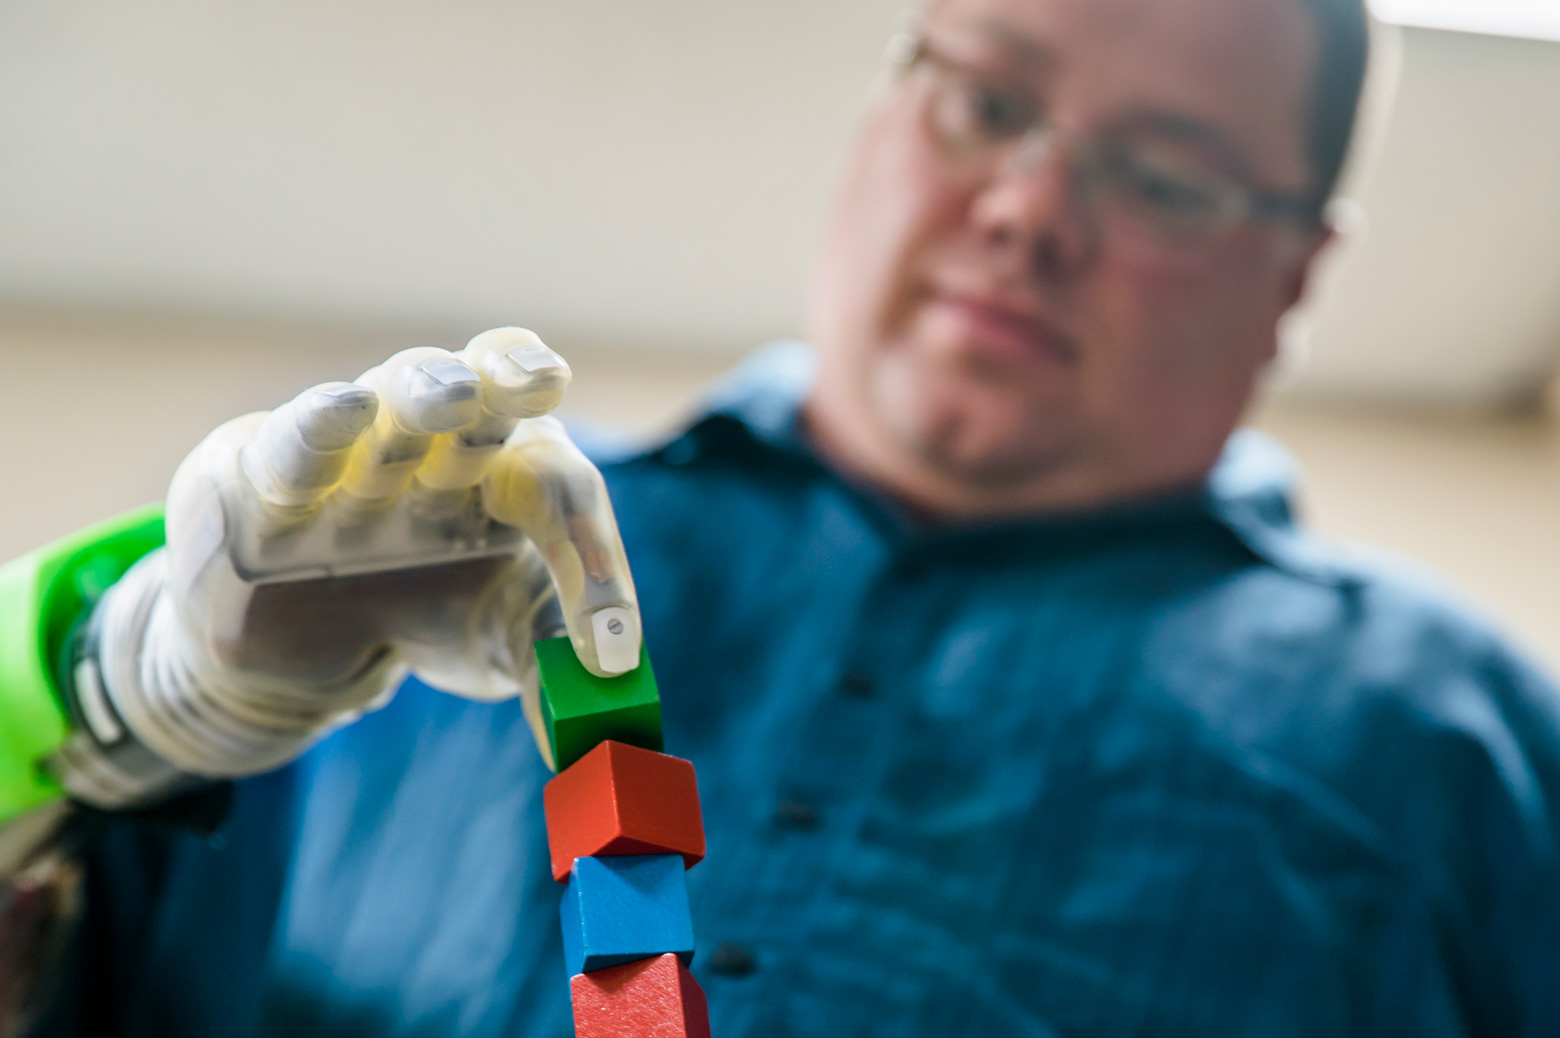 A man stacks cubes using a prosthetic arm